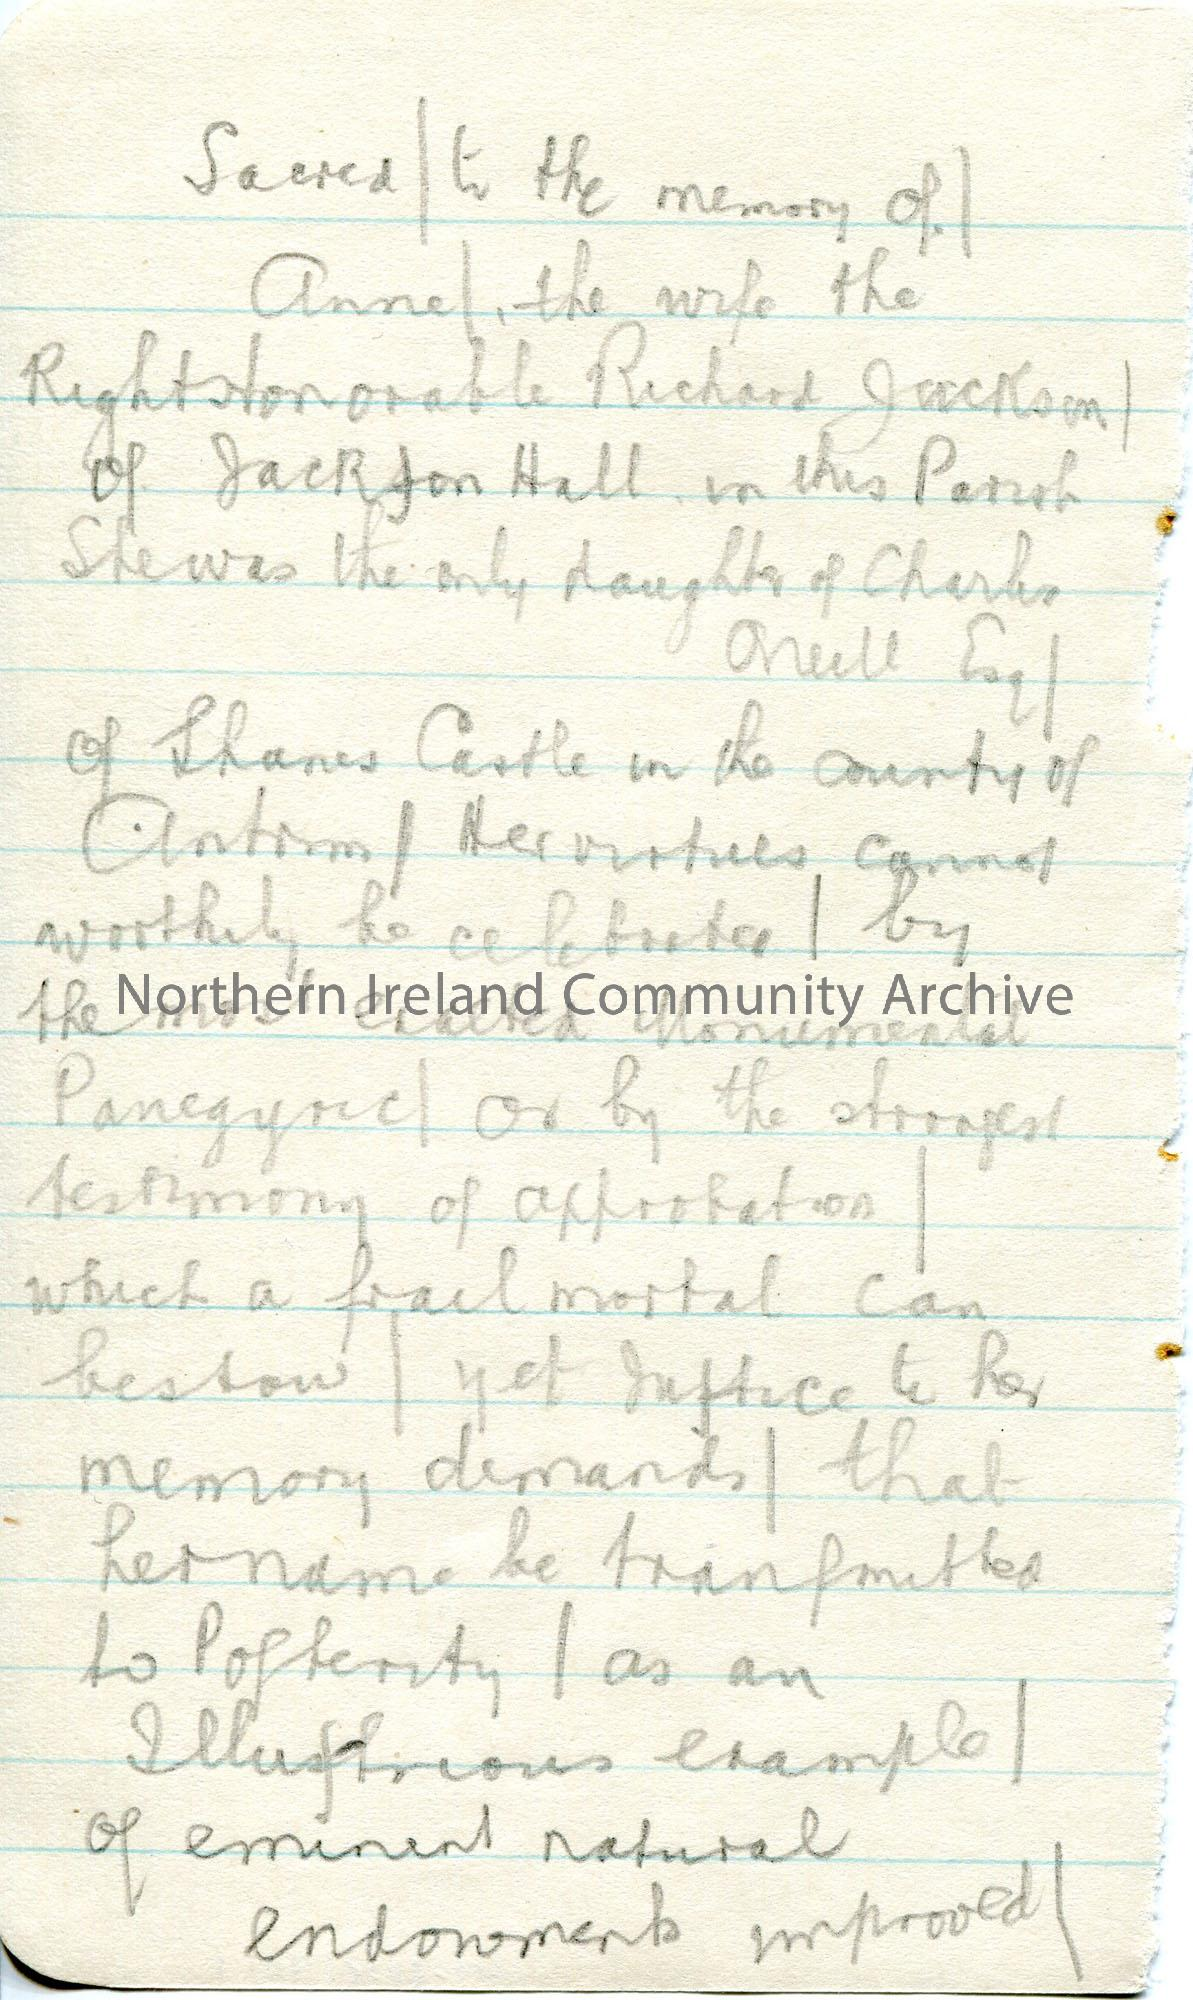 Page 1 of 4. Handwritten notes in pencil of the memorial of Anne Jackson, wife of Right Honourable Richard Jackson of Jackson Hall. Taken from Killowe…